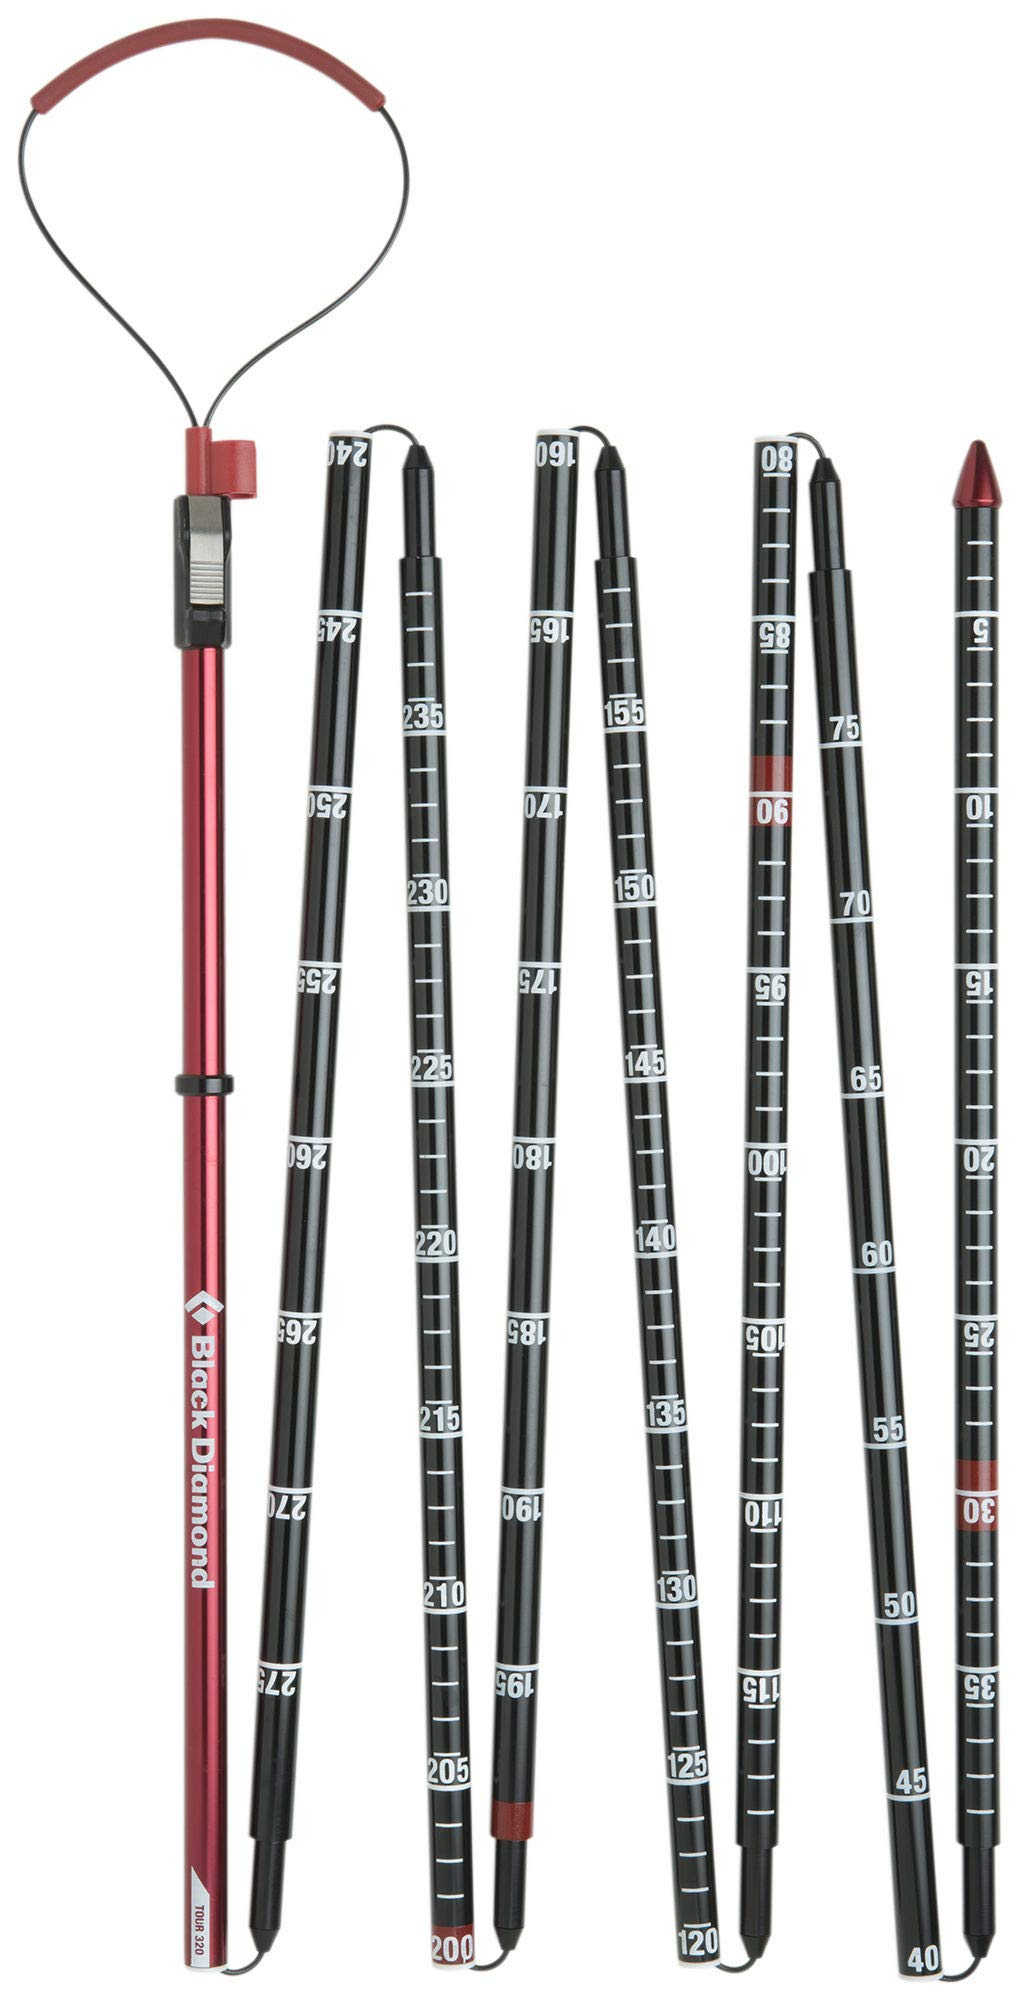 Black Diamond Quickdraw Probe Tour, Fire Red, 320cm by Black Diamond